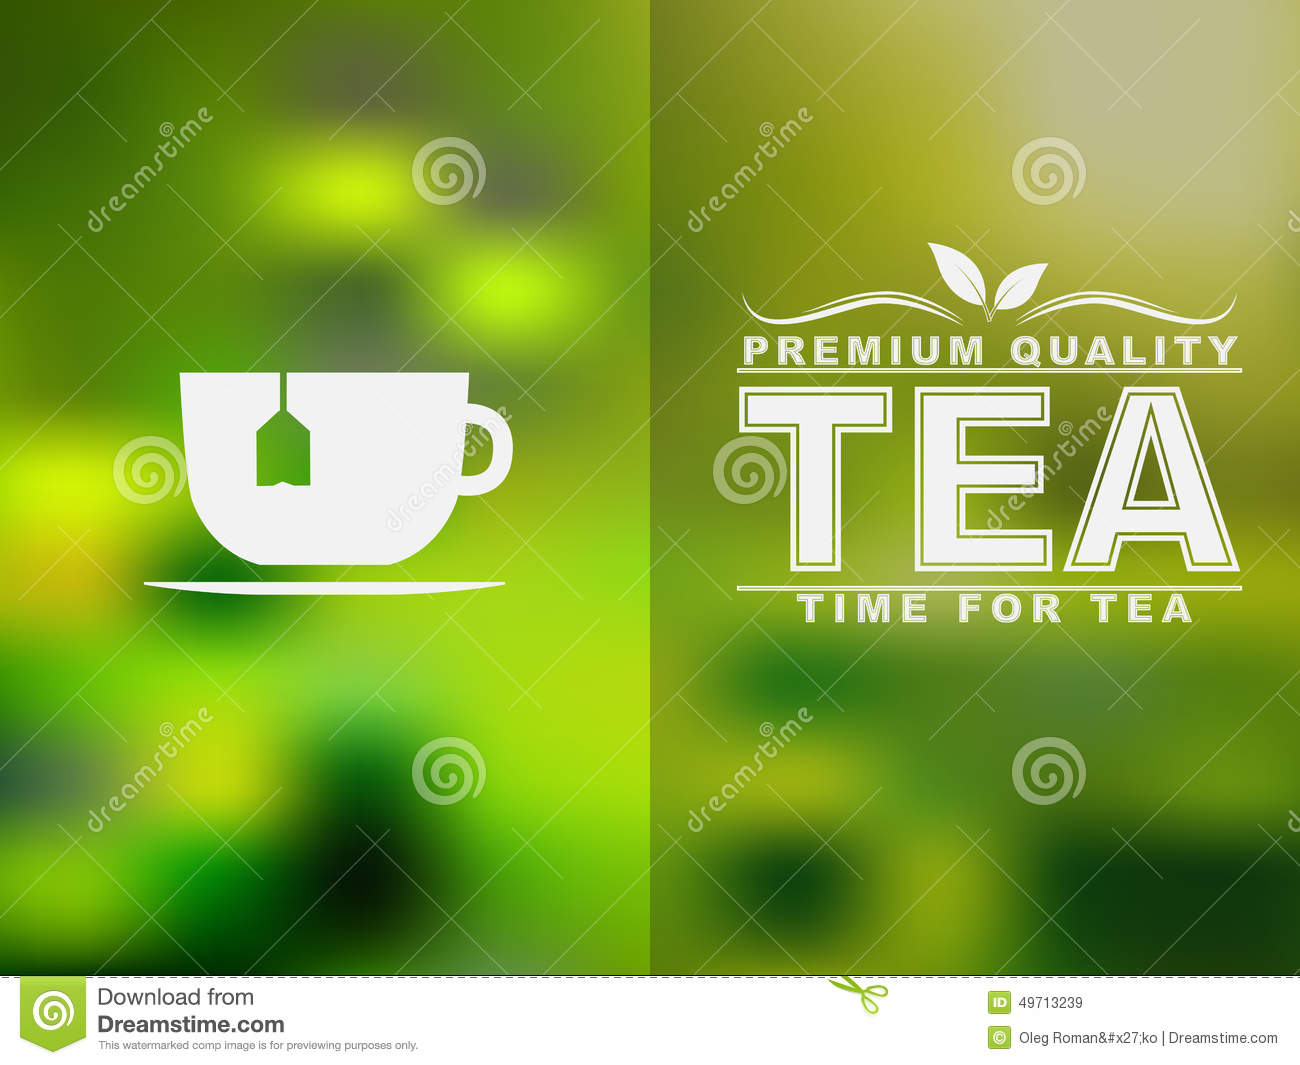 tea cup icon and text design with a blurred background  stock vector